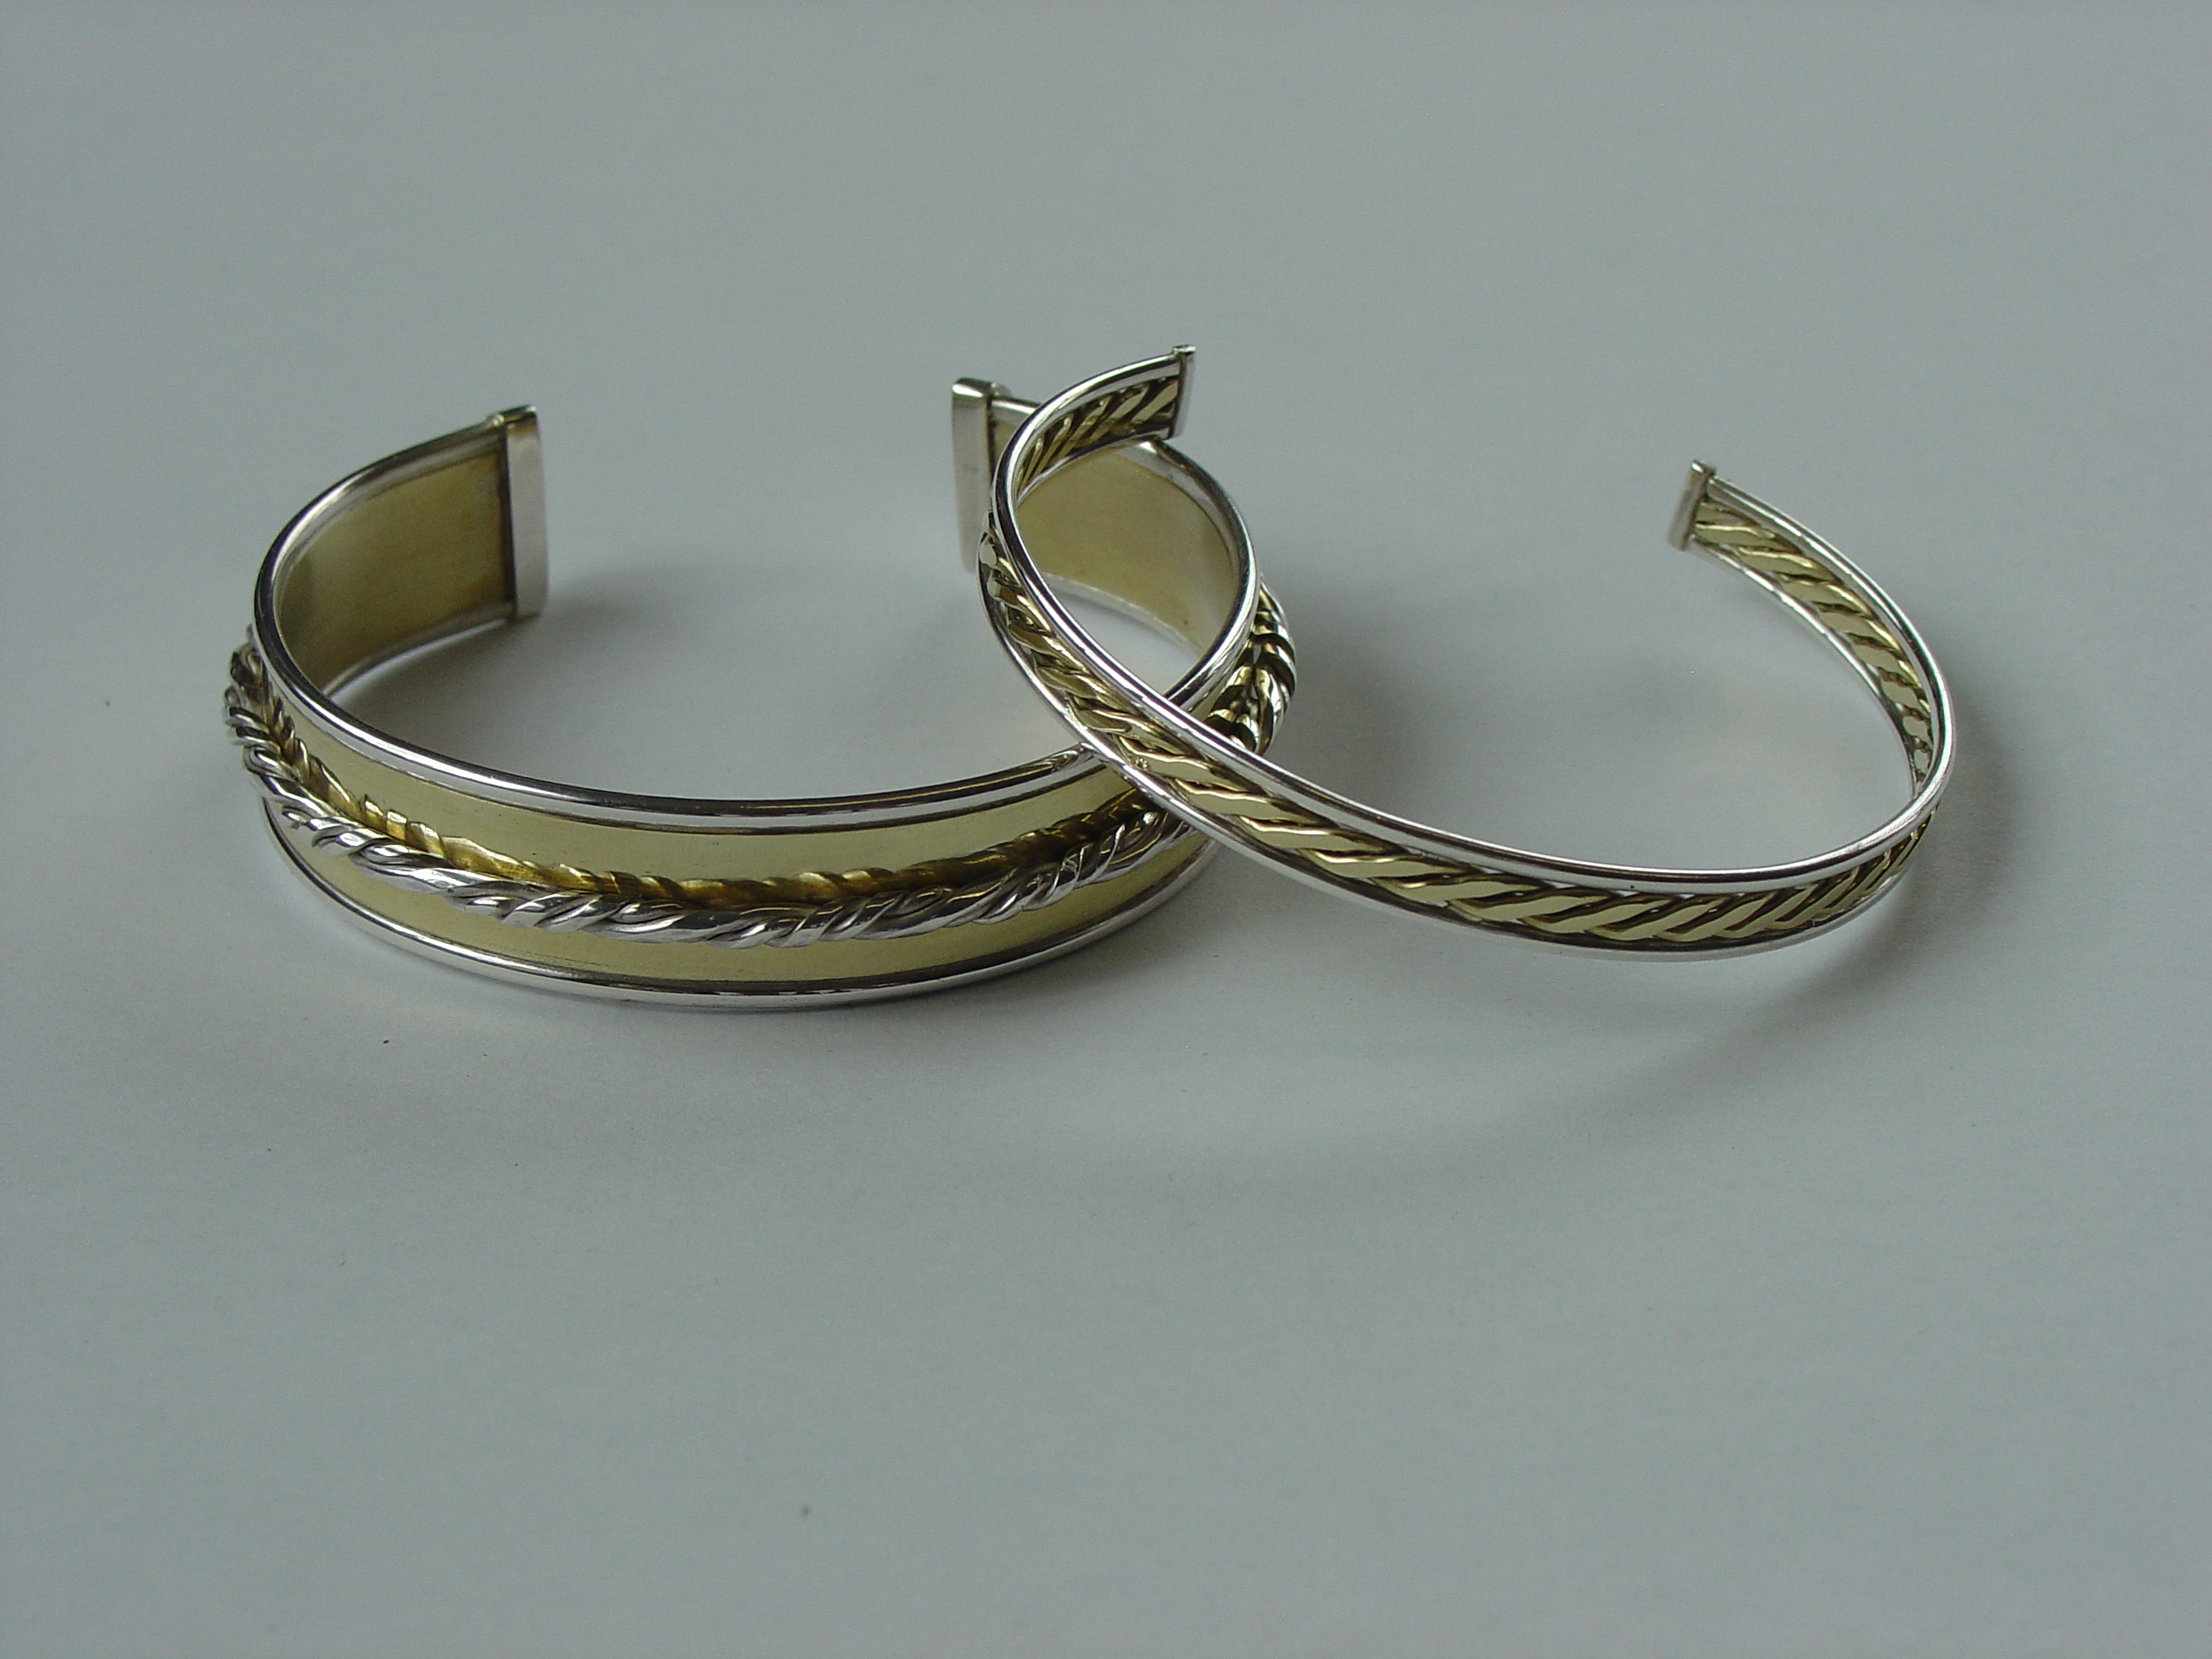 Silver and brass bangles